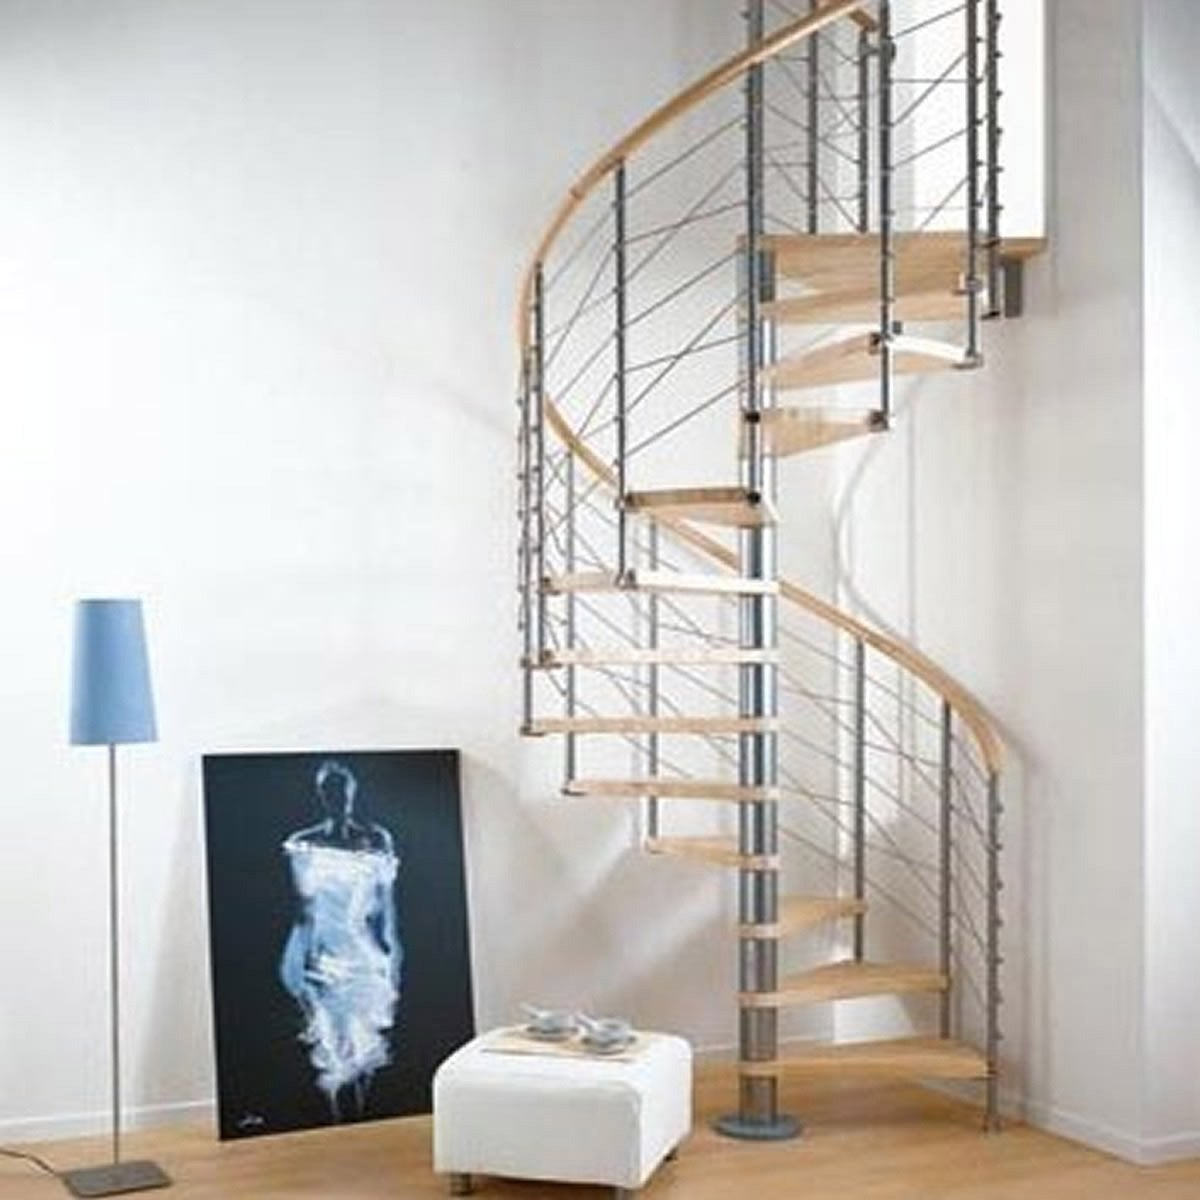 escalier colima on rond ring structure m tal marche bois leroy merlin. Black Bedroom Furniture Sets. Home Design Ideas